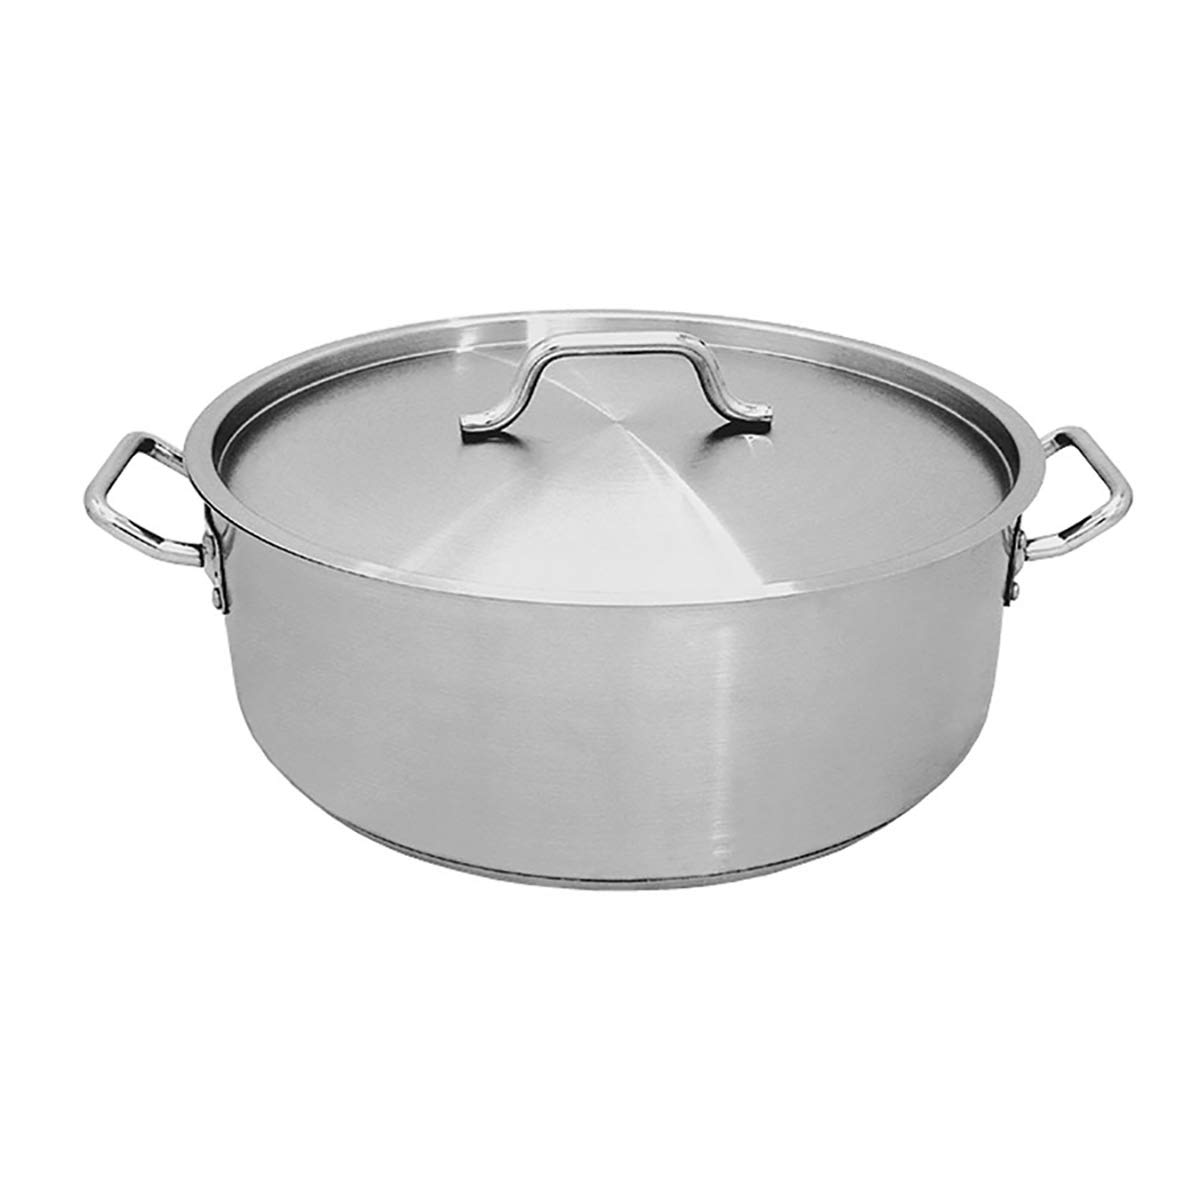 Update International SBR-20 20-Quart Stainless Steel Brazier with Cover, Silver